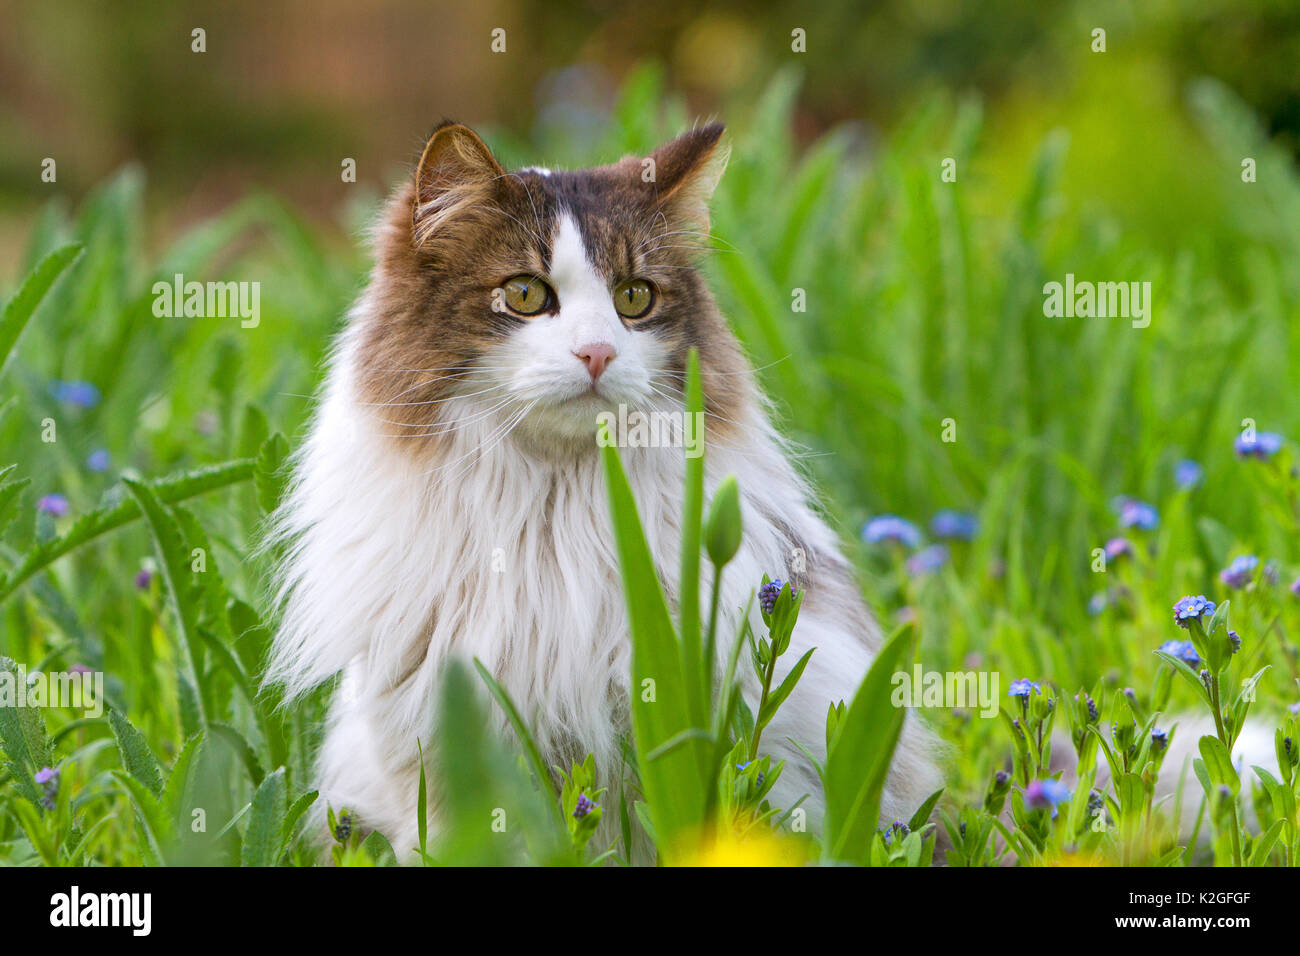 Long haired domestic cat portrait , sitting in grass, France - Stock Image